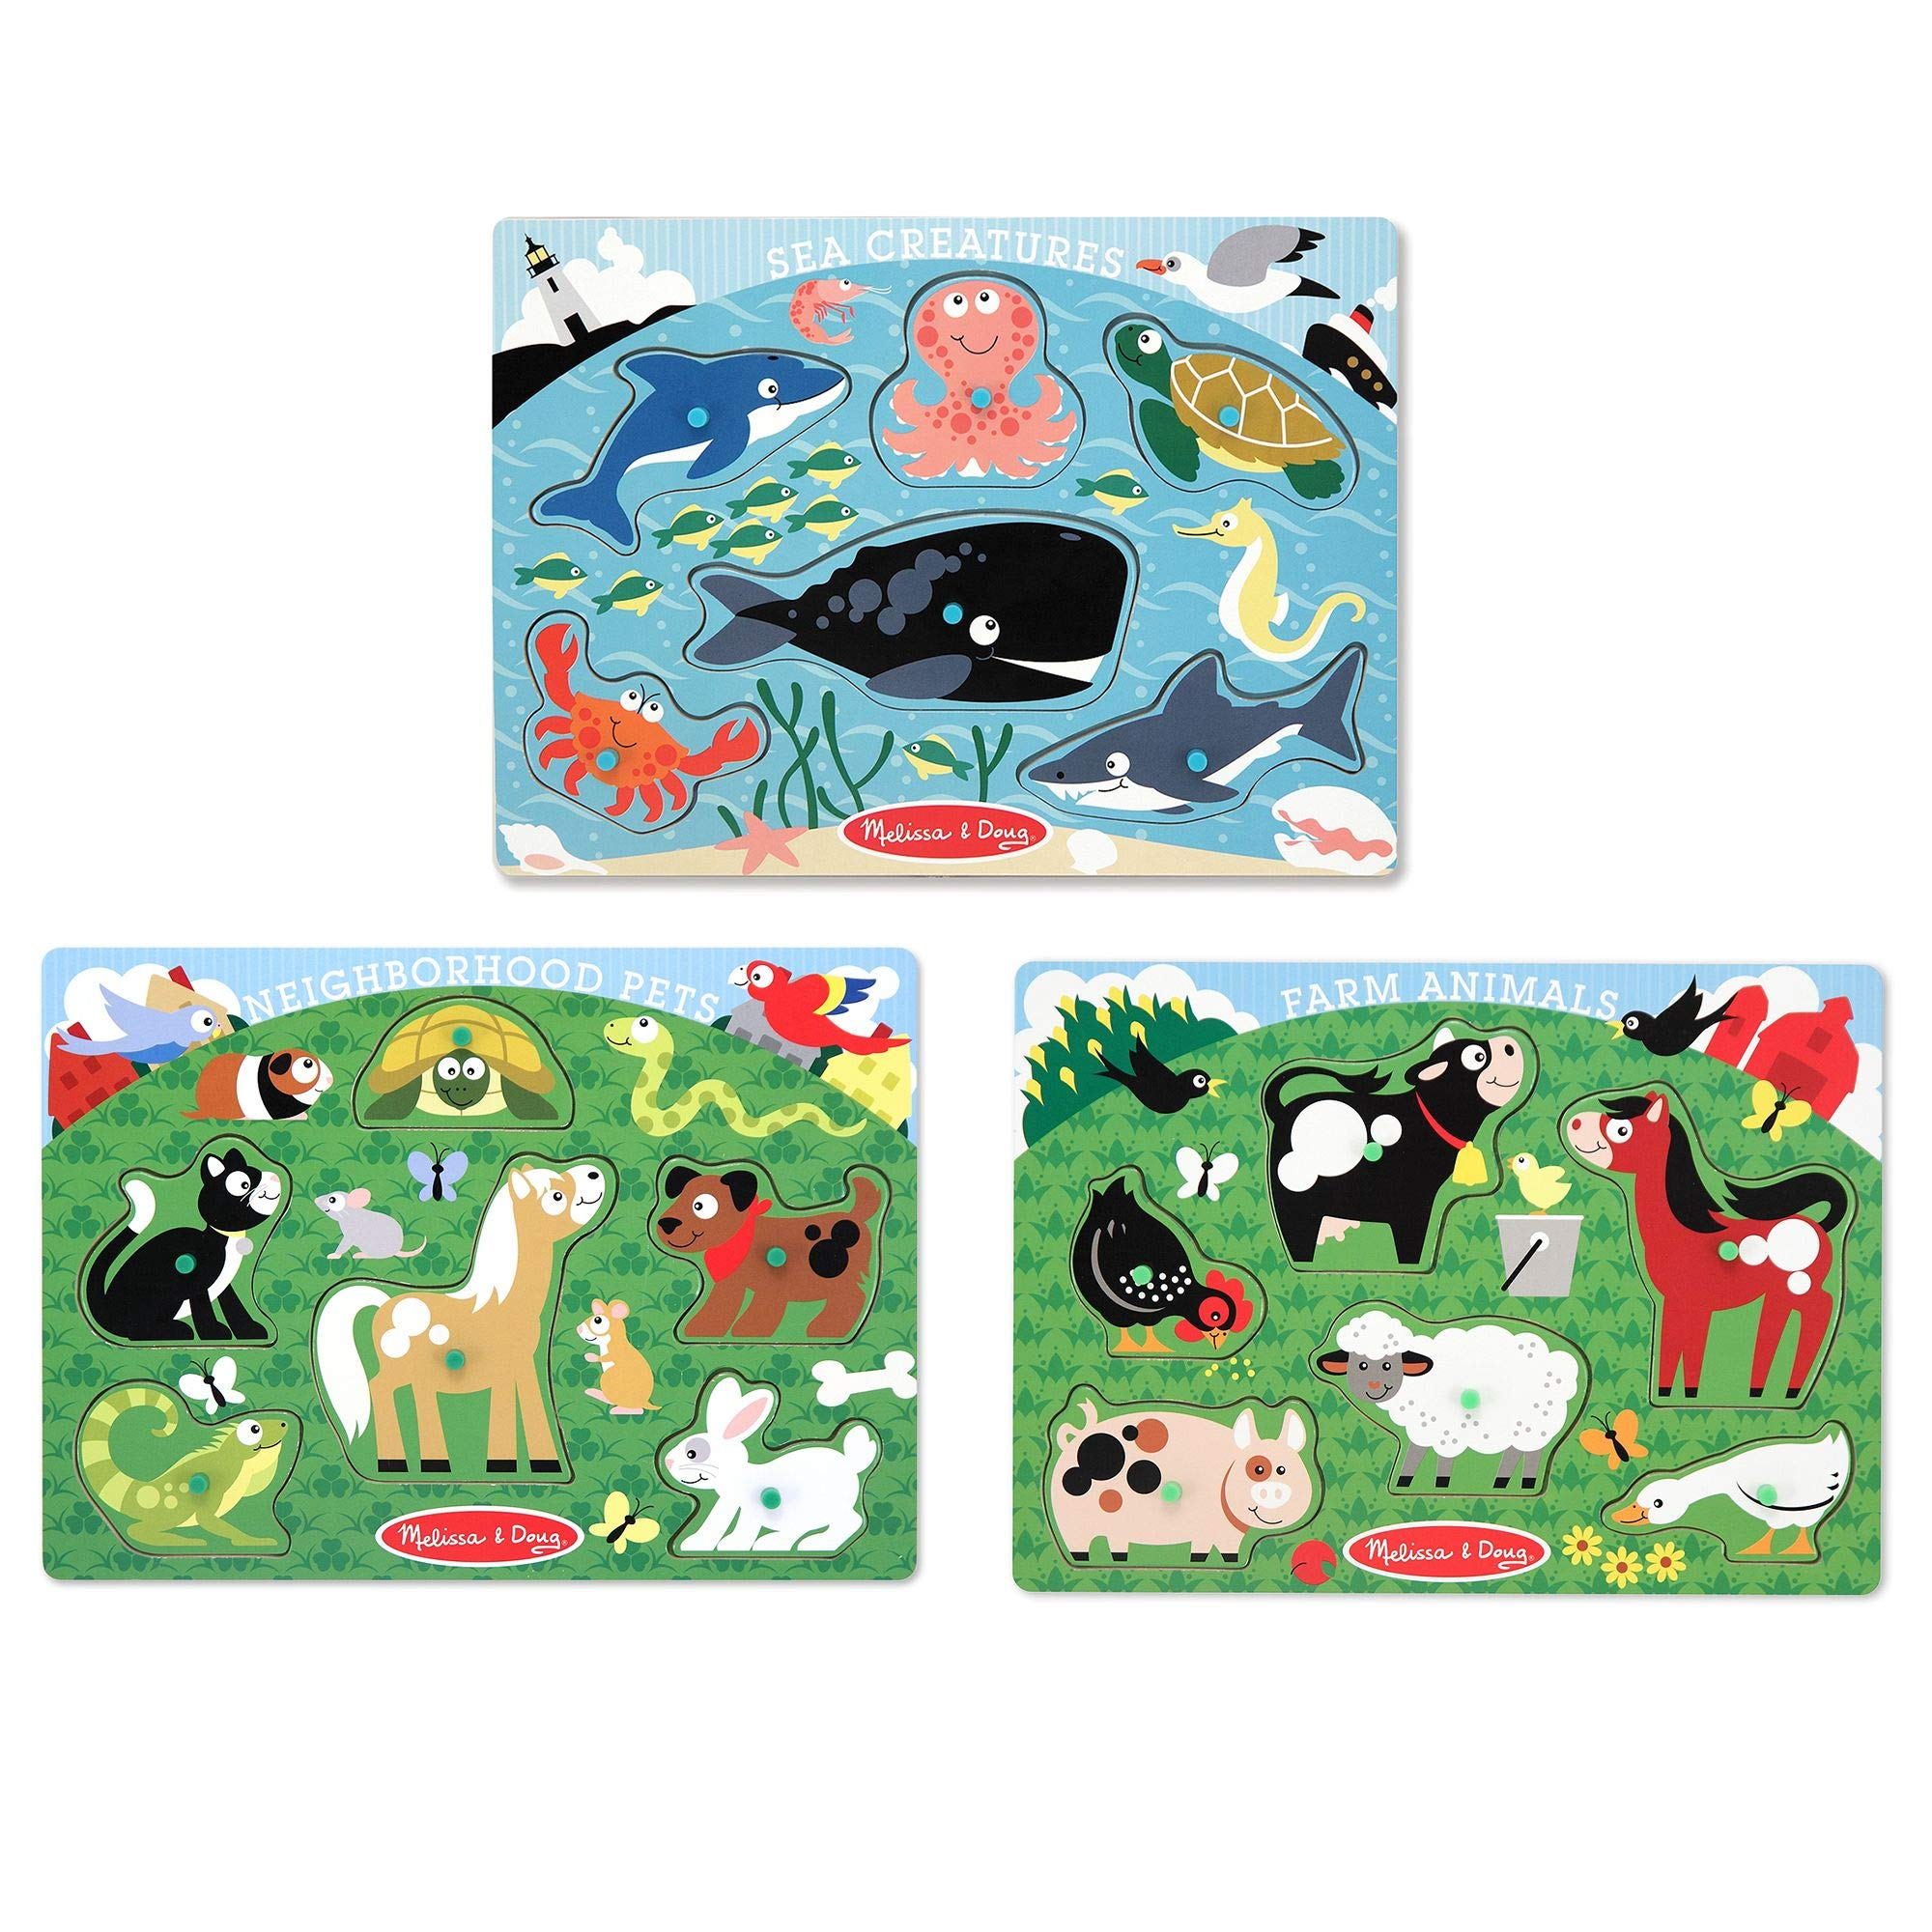 Melissa & Doug Peg Puzzles Set, Farm Animals, Pets, Ocean (Developmental Toy, Easy to Grasp, 3 Peg Puzzles, Animal Illustrations, 6 Pieces in Each) by Melissa & Doug